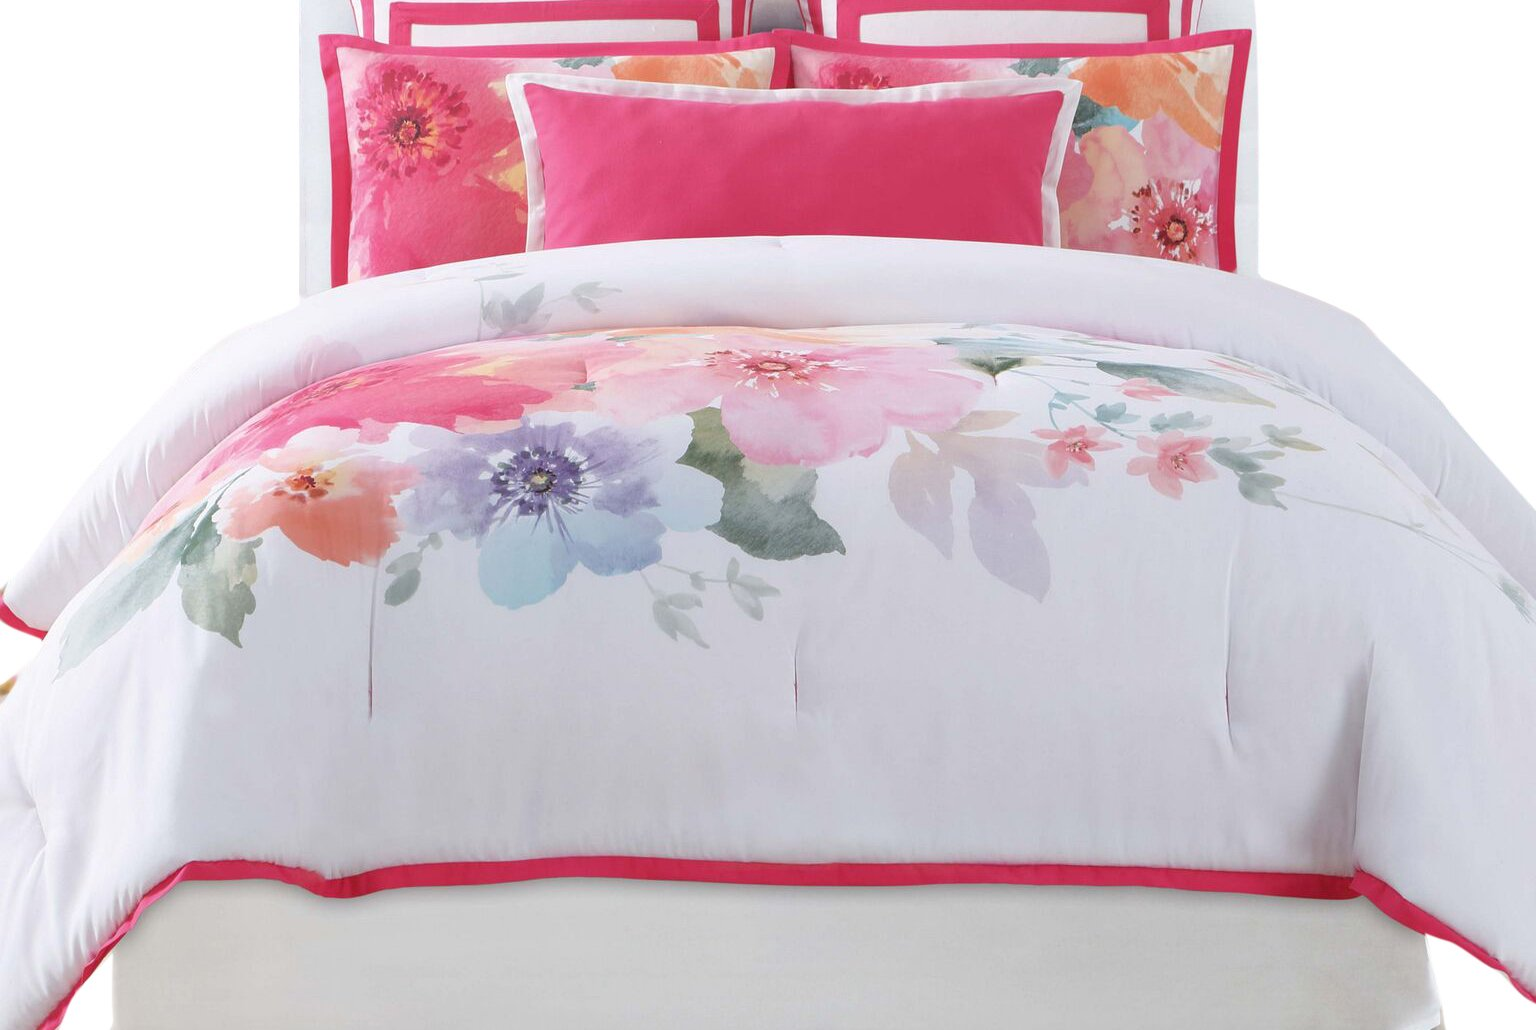 Christian Siriano Bold Floral 3 Piece Comforter Set, Full/Queen, Multicolor